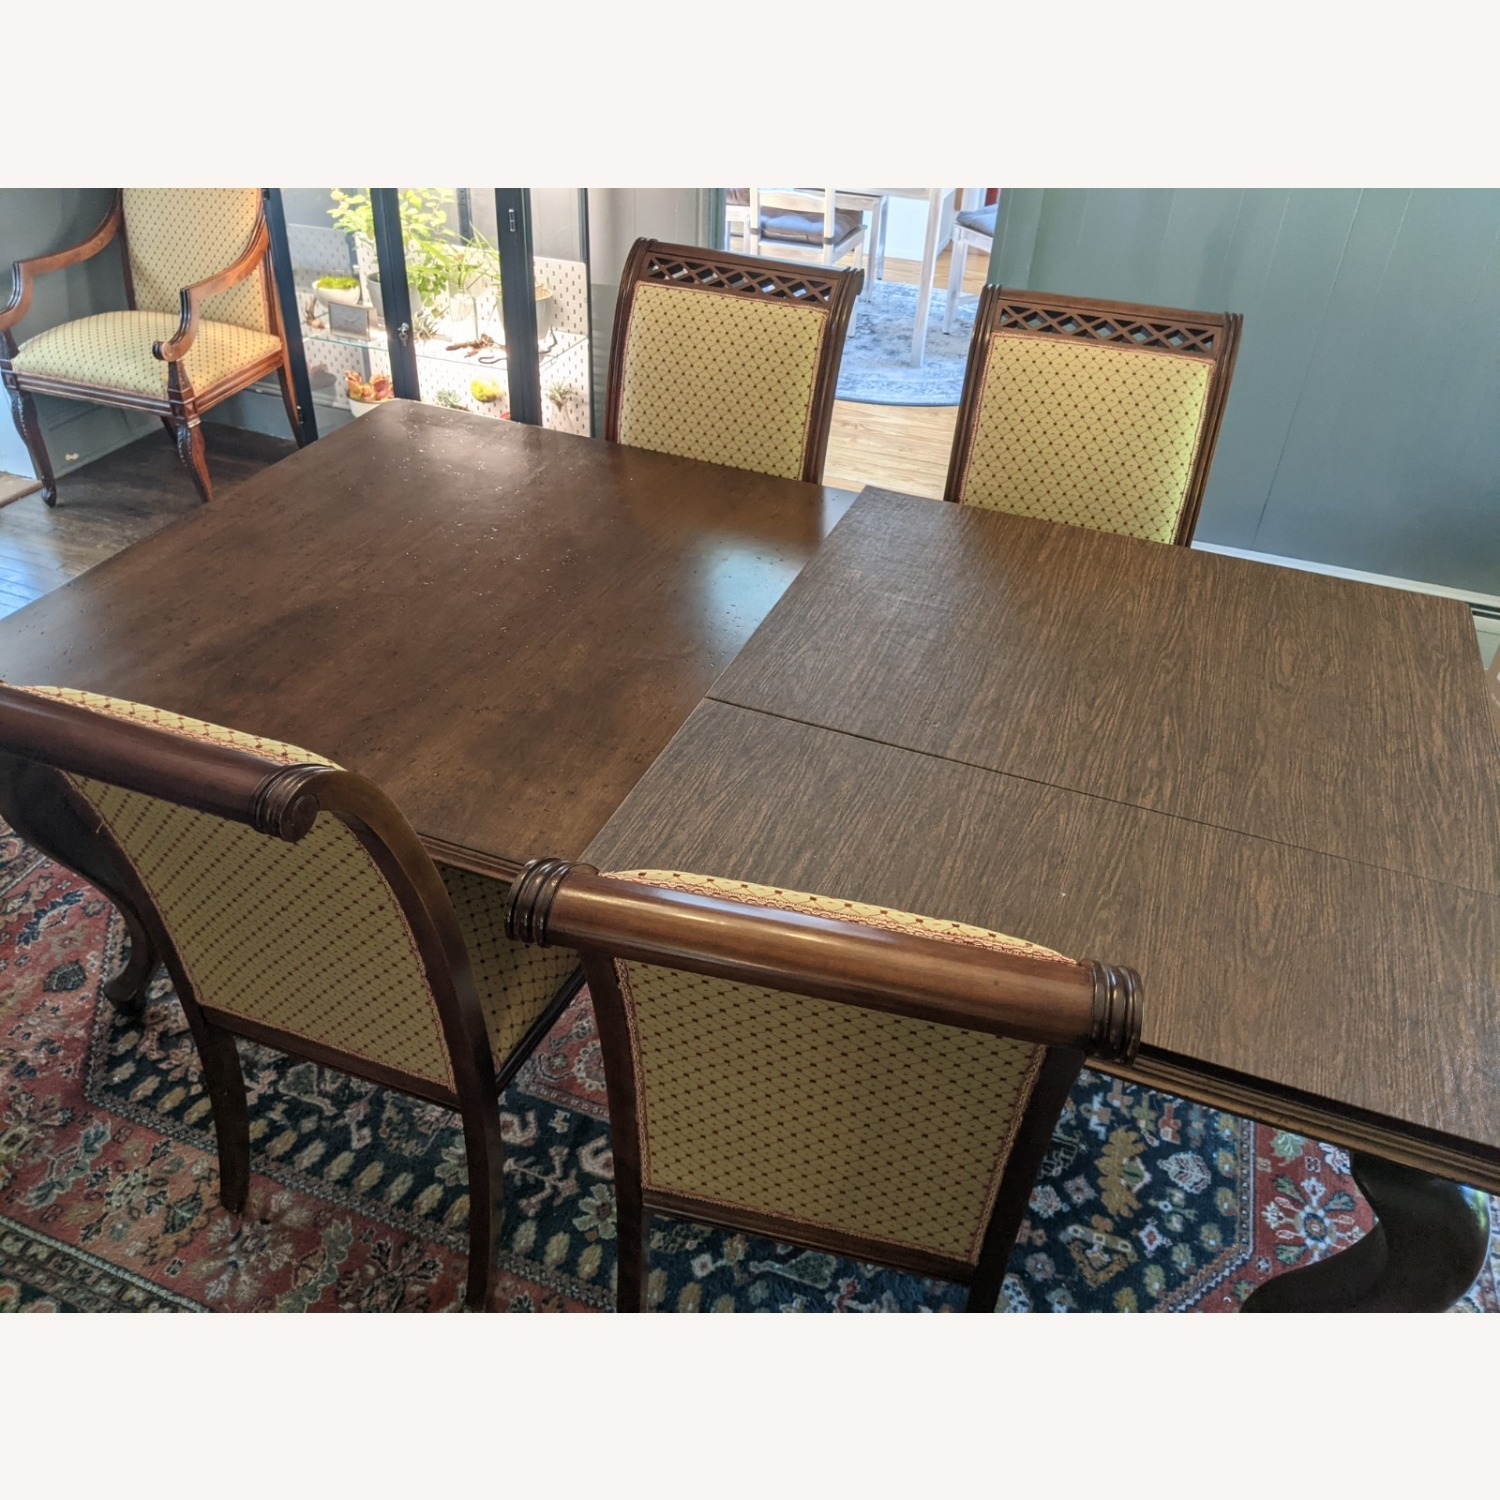 Queen Anne-style Table with Leaves and Table Pad - image-6